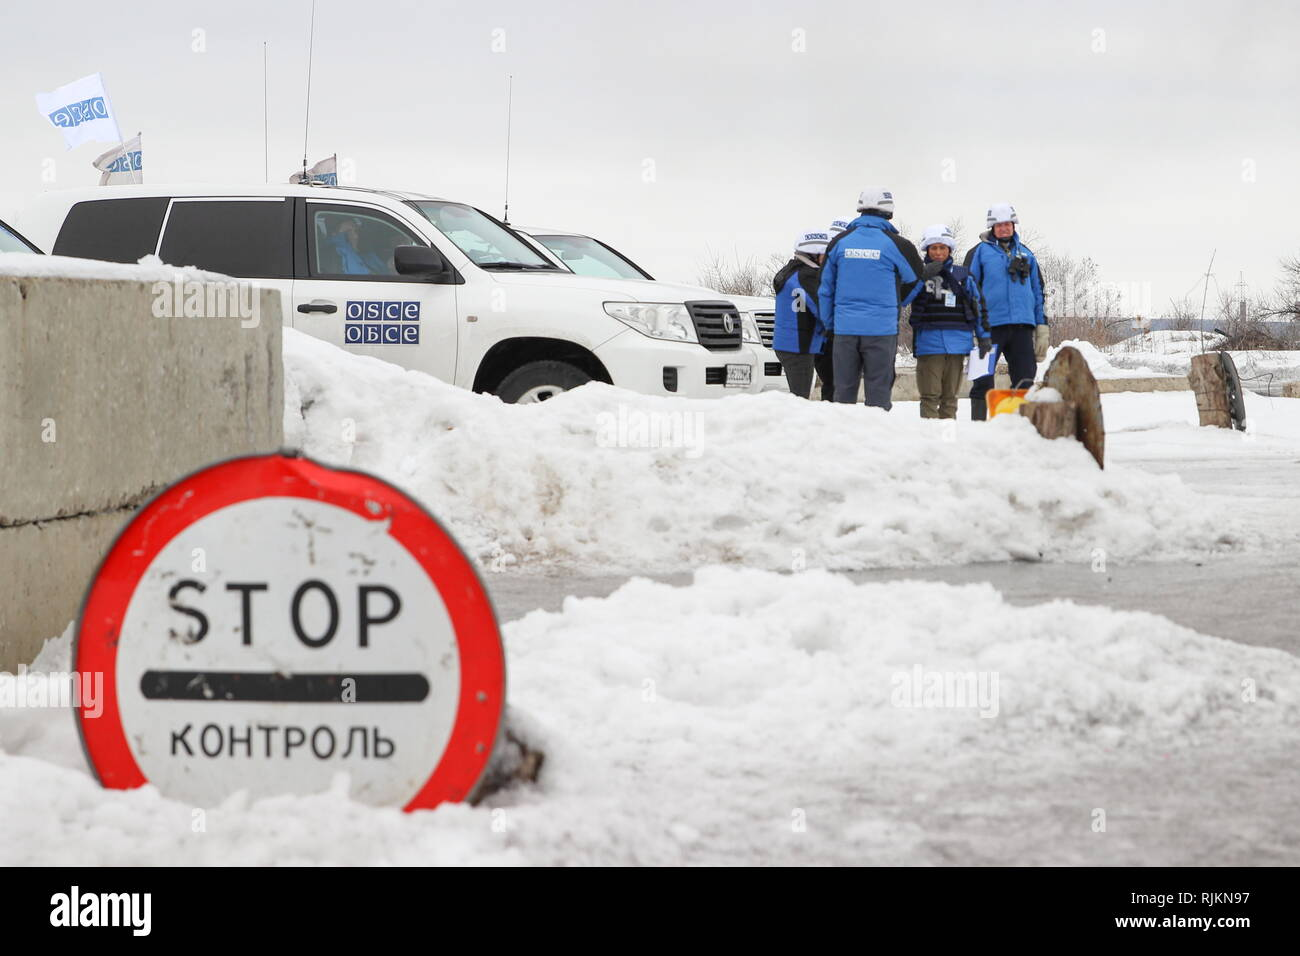 Schastye, Ukraine. 07th Feb, 2019. LUGANSK REGION, UKRAINE - FEBRUARY 7, 2019: OSCE observers arrive to attend the handover of 33 people who were convicted in east Ukraine before 2014 and who want to service their terms outside Donbass, by the Lugansk People's Republic to the Kiev authorities. Alexander Reka/TASS Credit: ITAR-TASS News Agency/Alamy Live News - Stock Image